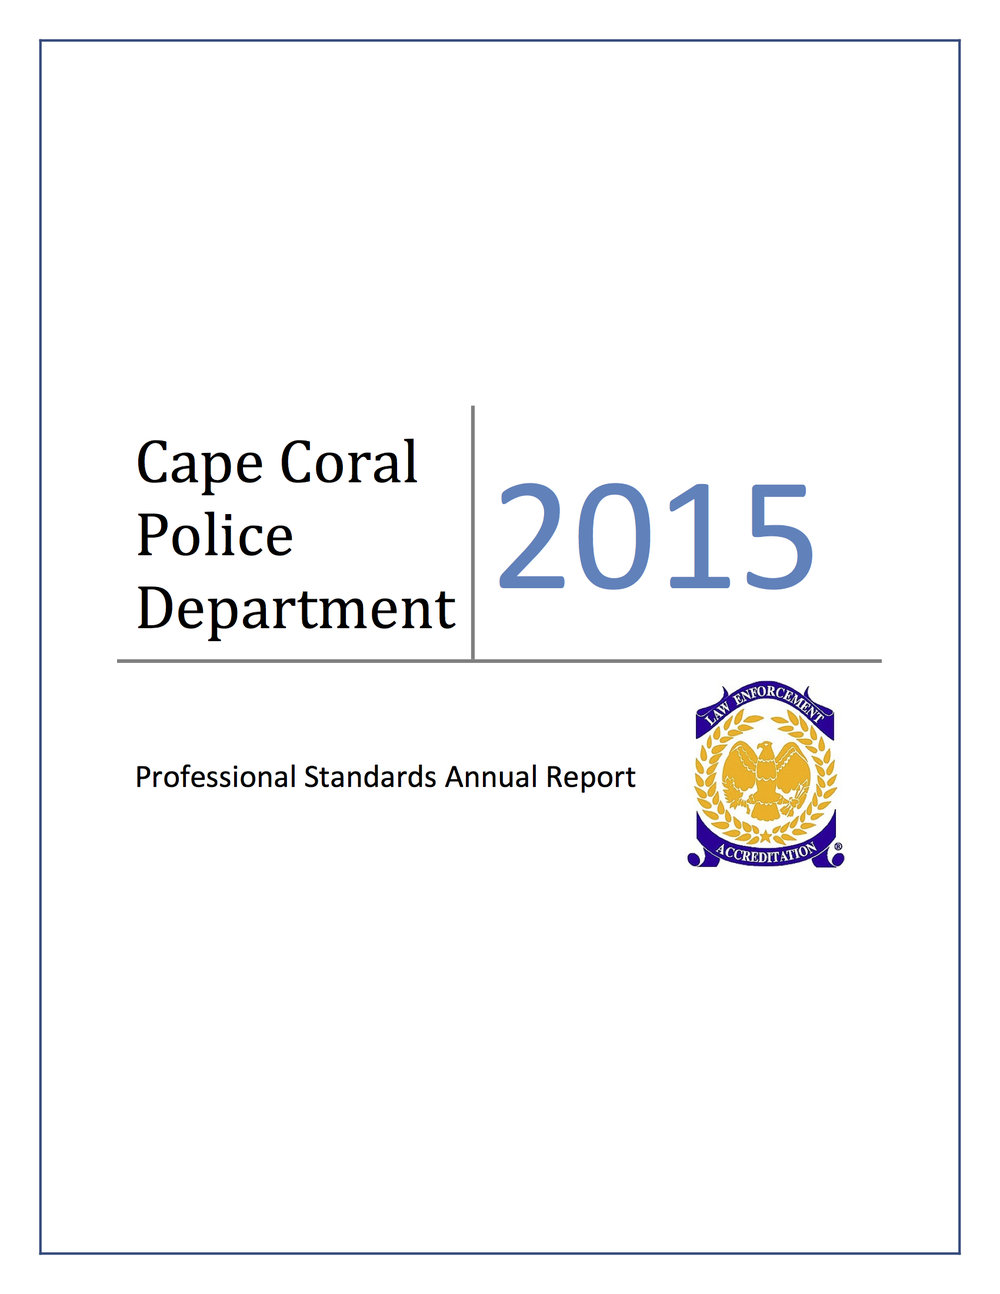 2015 Annual IA Report - The Professional Standards Bureau publishes an annual overview and statistical analysis of Internal Affairs.